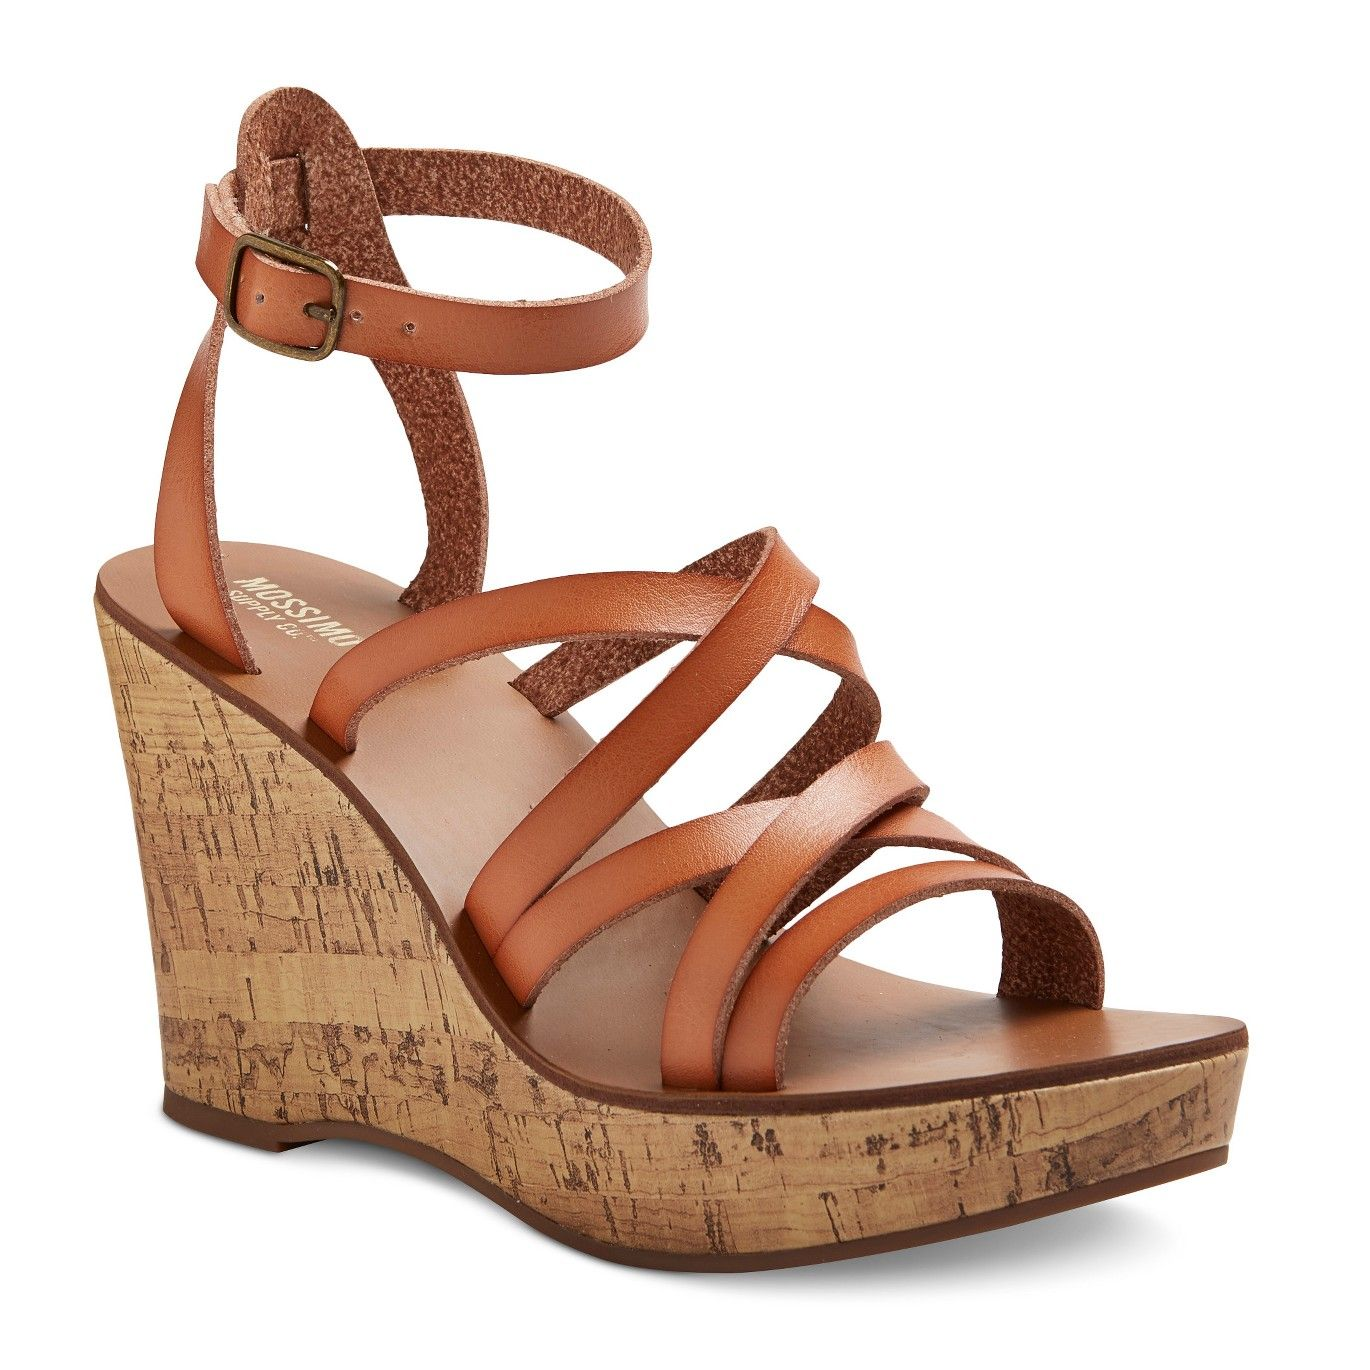 83b74bdd1848 Women s Reese Quarter Straps Cork Wedge Sandals Mossimo Supply Co.™   Target